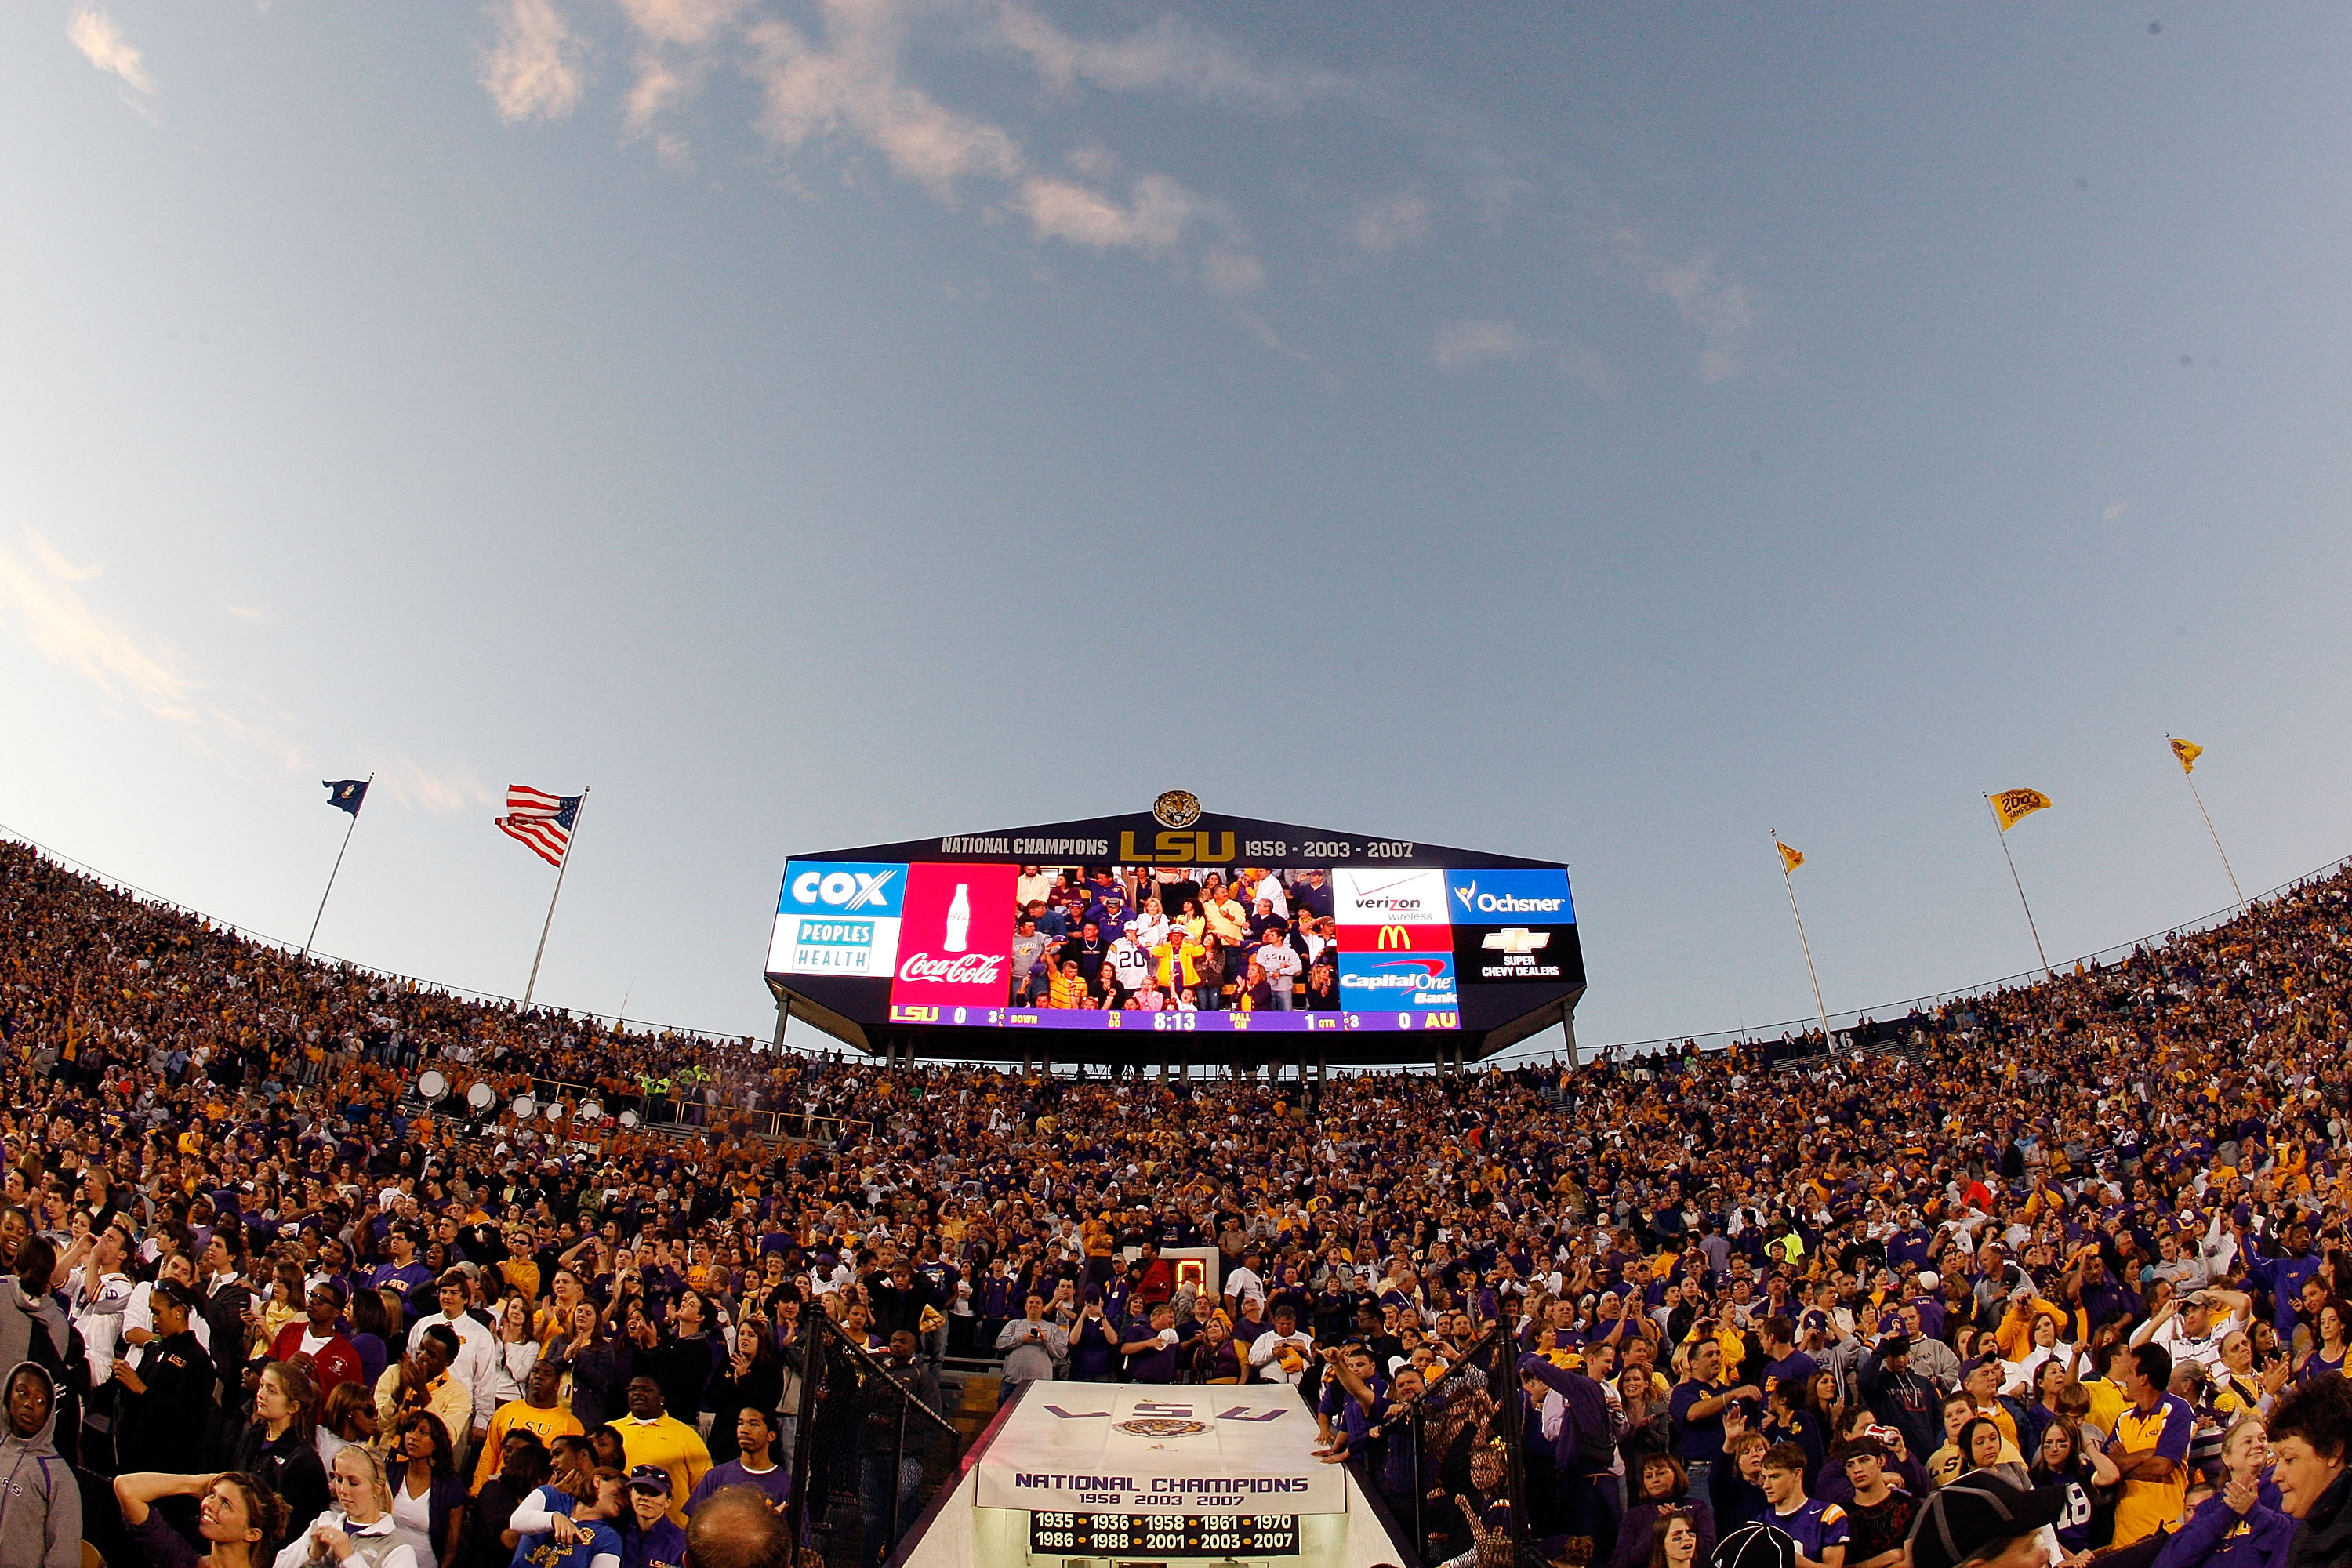 BATON ROUGE, LA - OCTOBER 24:  Fans of the Louisiana State University Tigers cheer during pregame before playing  the Auburn Tigers at Tiger Stadium on October 24, 2009 in Baton Rouge, Louisiana.  (Photo by Chris Graythen/Getty Images)